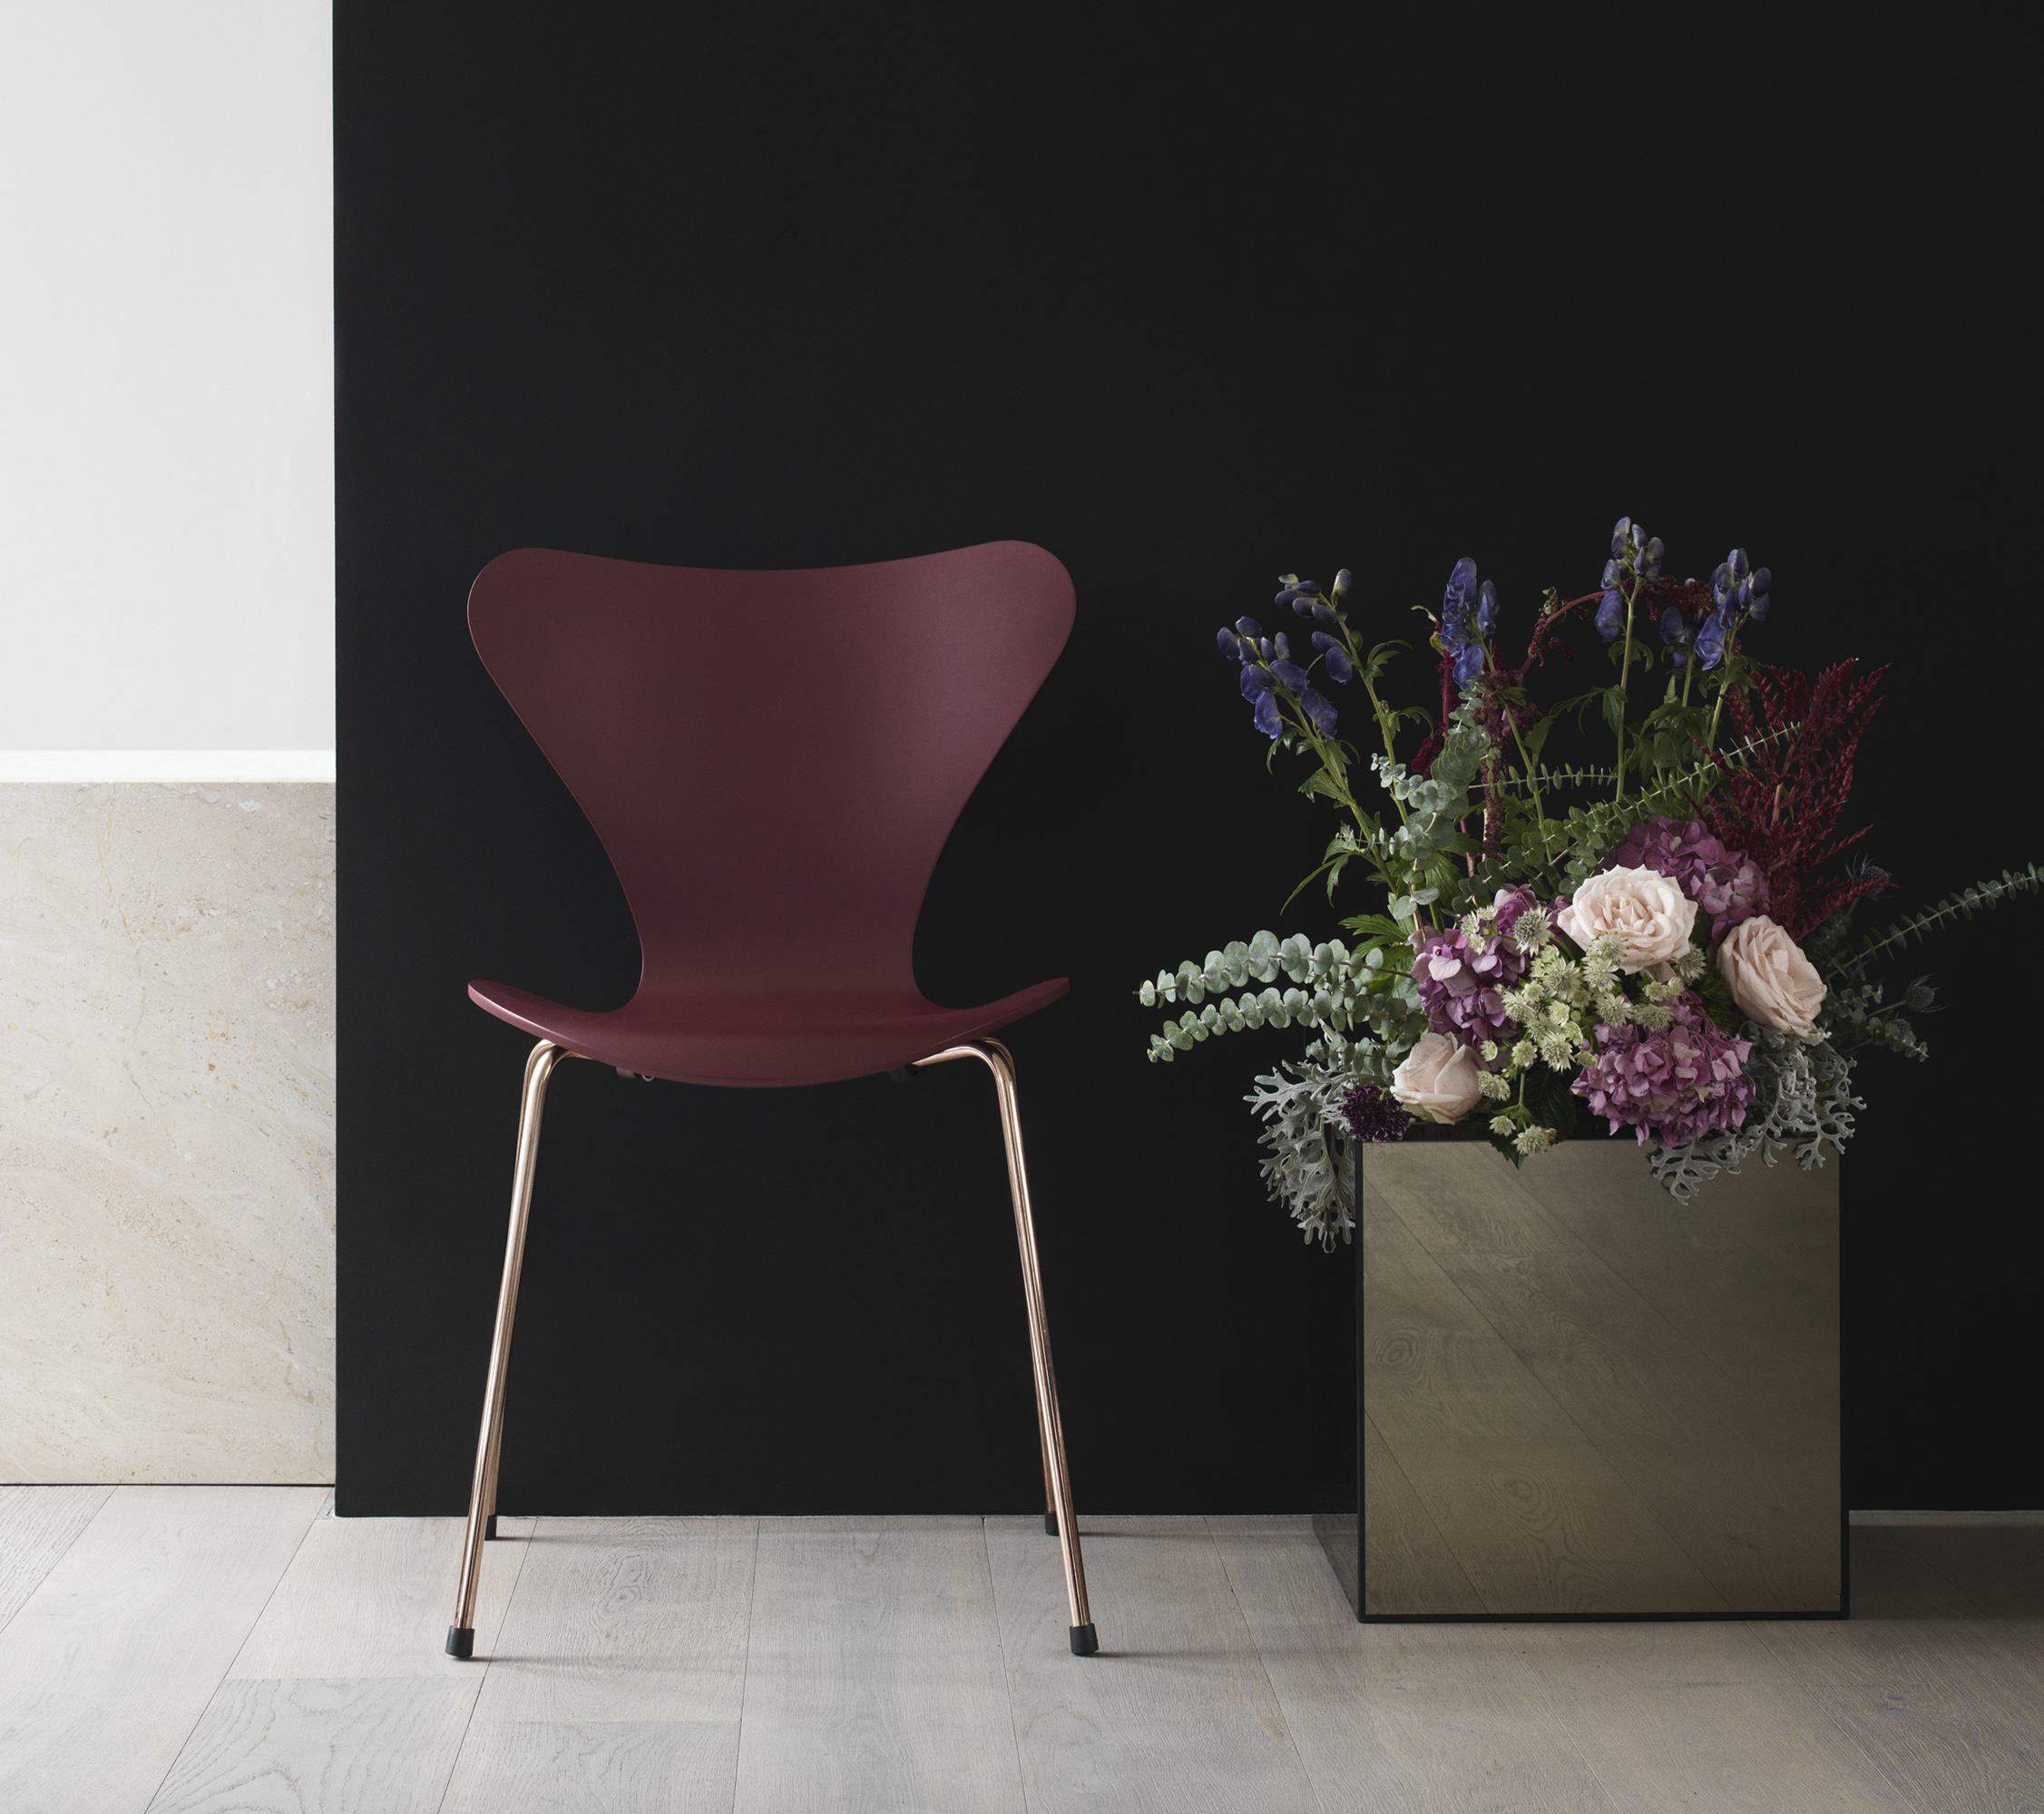 Republic of Fritz Hansen's limited edition Arne Jacobsen chairs were inspired by cherry blossom